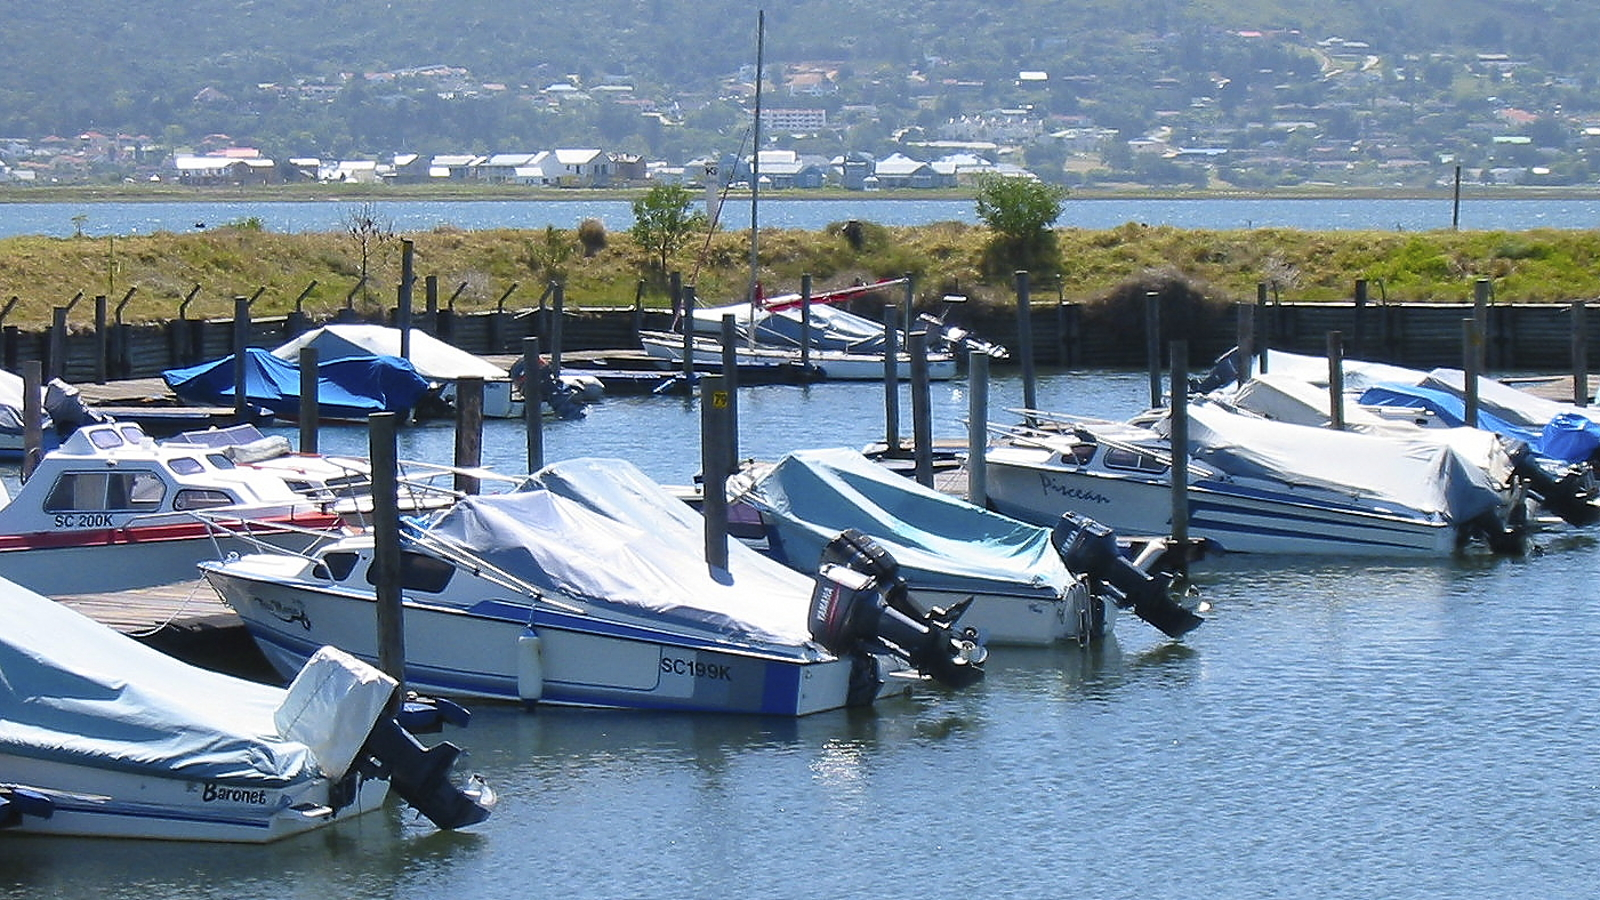 Leisure Isleboat club image by Andrew Aveley on the Knysna Eleco home page